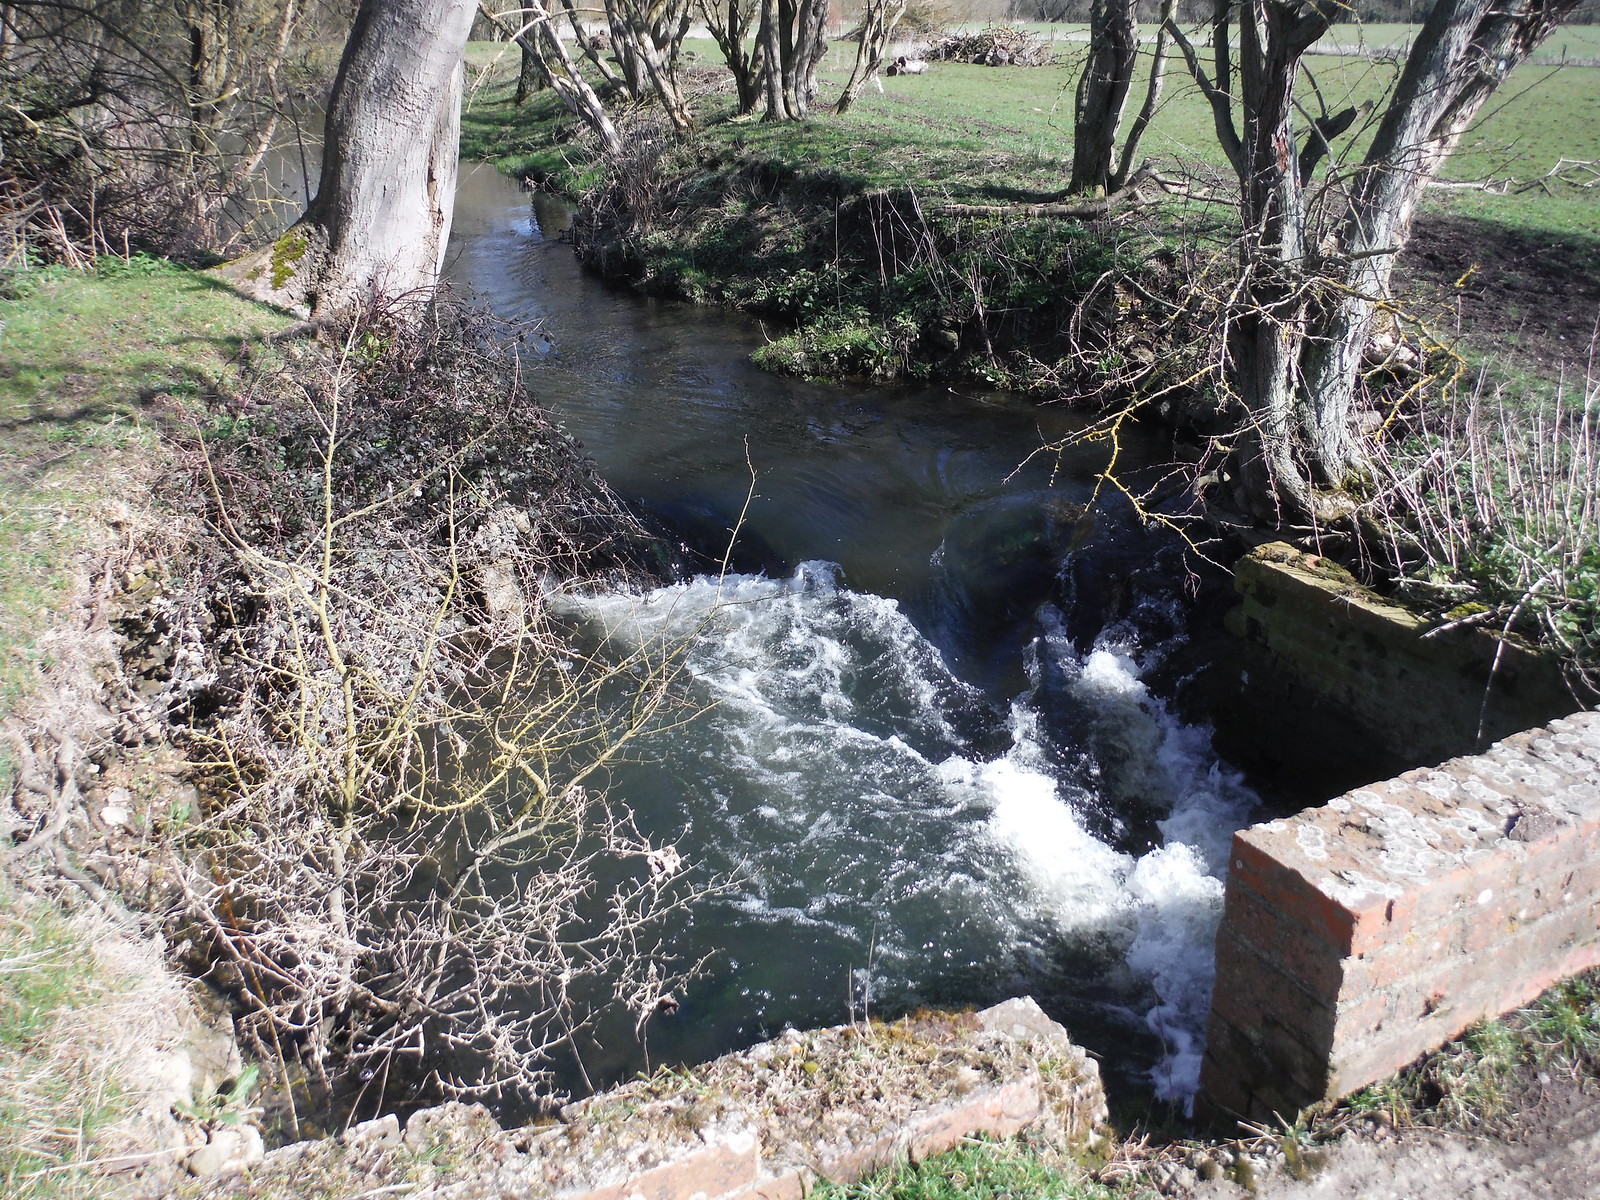 Millstream off the Thame, near Notley Abbey SWC Walk 193 Haddenham to Aylesbury (via Gibraltar and Ford)